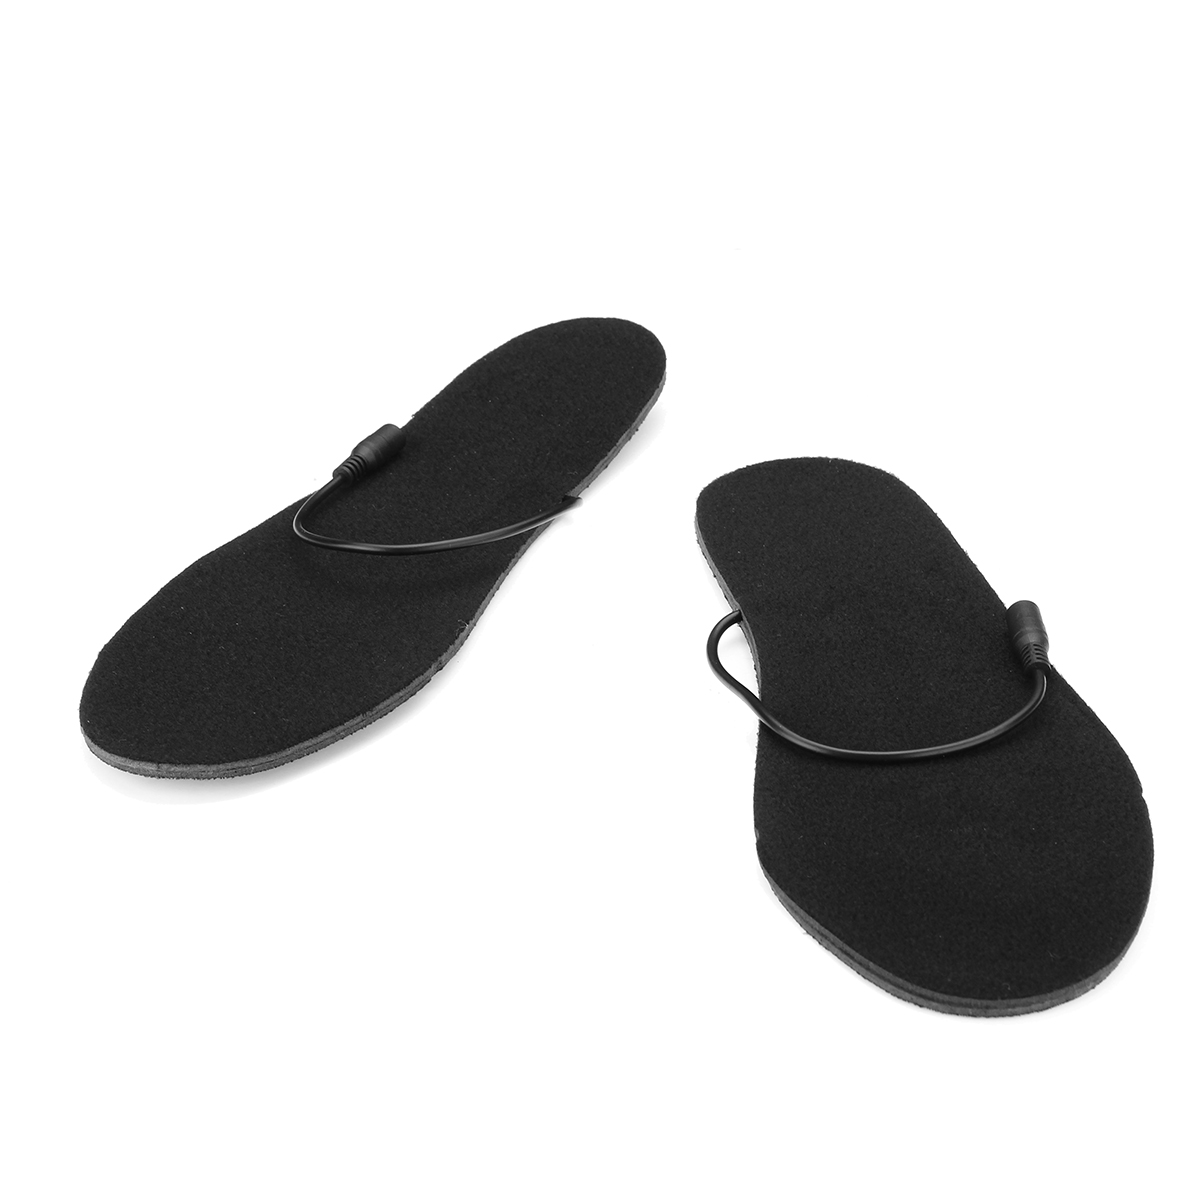 Electric Heated Shoe Insole Cut-to-Fit Warm Socks Feet Heater USB Foot Winter Warmer Pads Insoles